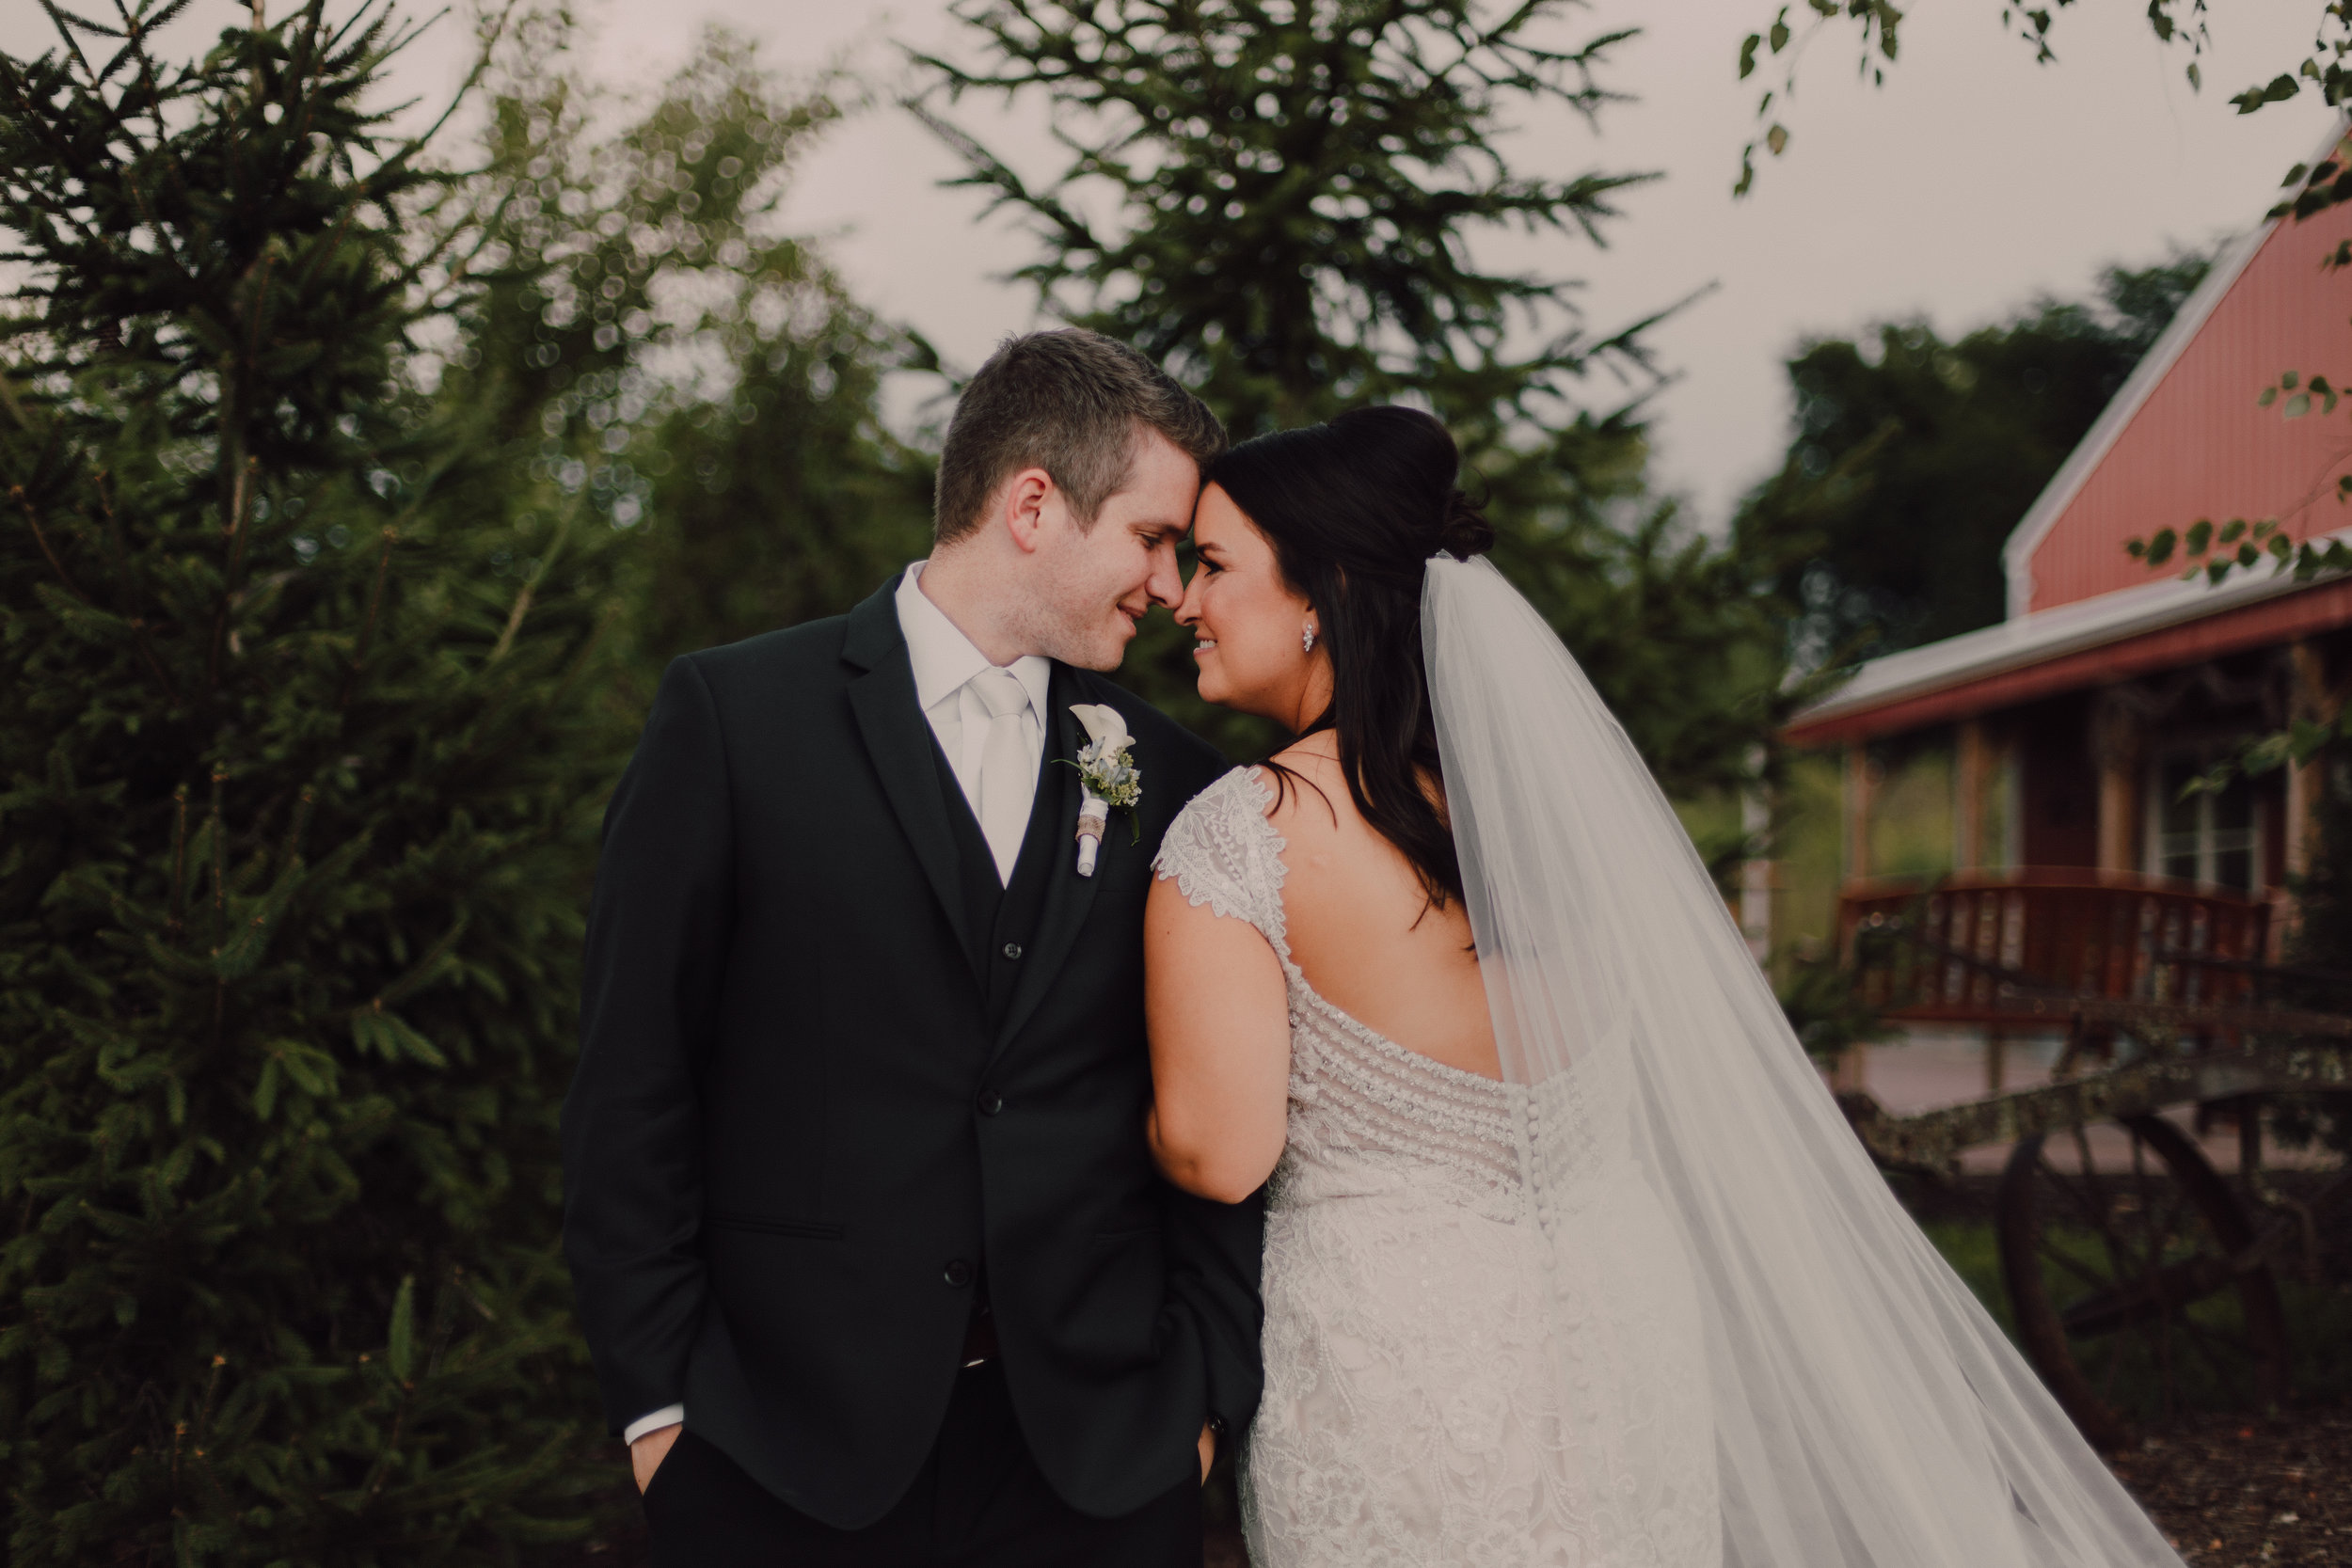 Chic Barn Wedding - Venue: Abbey FarmsHair: Coleen at Variations in Hair DesignMakeup: LG Makeup & TansFlowers: Soukals FloralDress: Allure Bridal at Reddington BridalVideographer: Elegante Media Chicago, VideoDecor: Garland & LaceDJ: Greg at DJ's for Fou